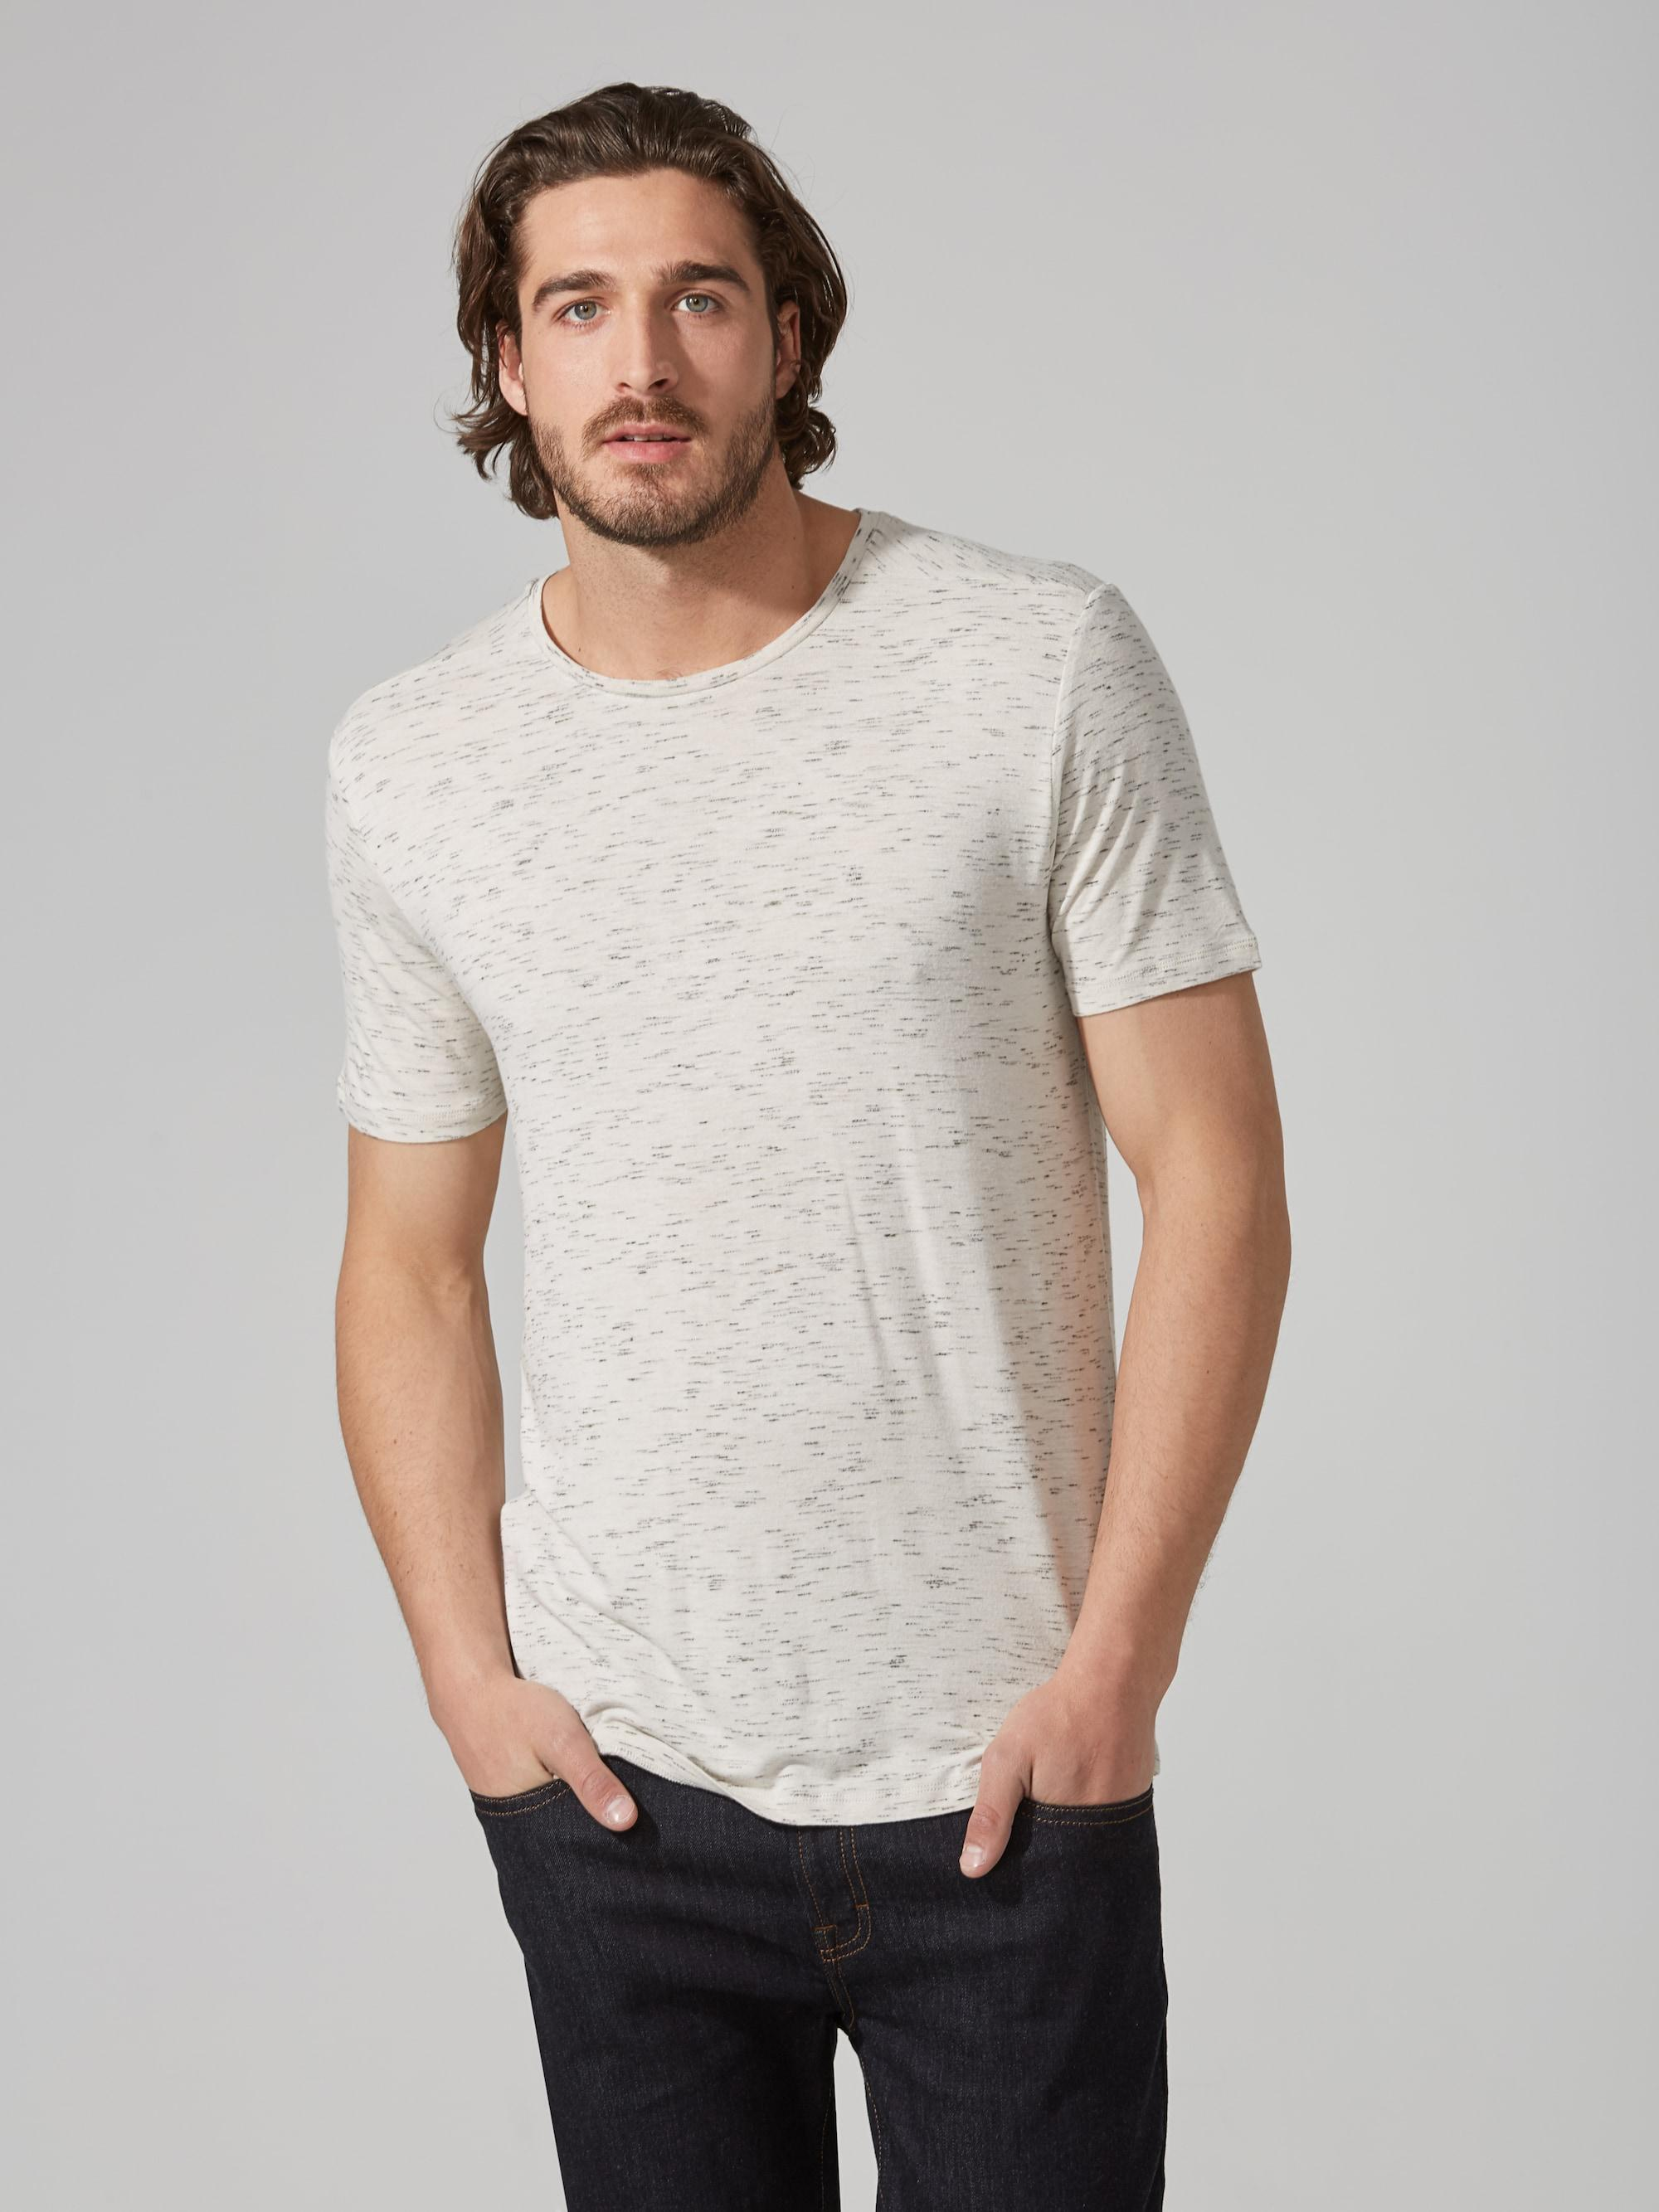 Frank and oak loose fit jersey t shirt in white melange in for Frank and oak shirt